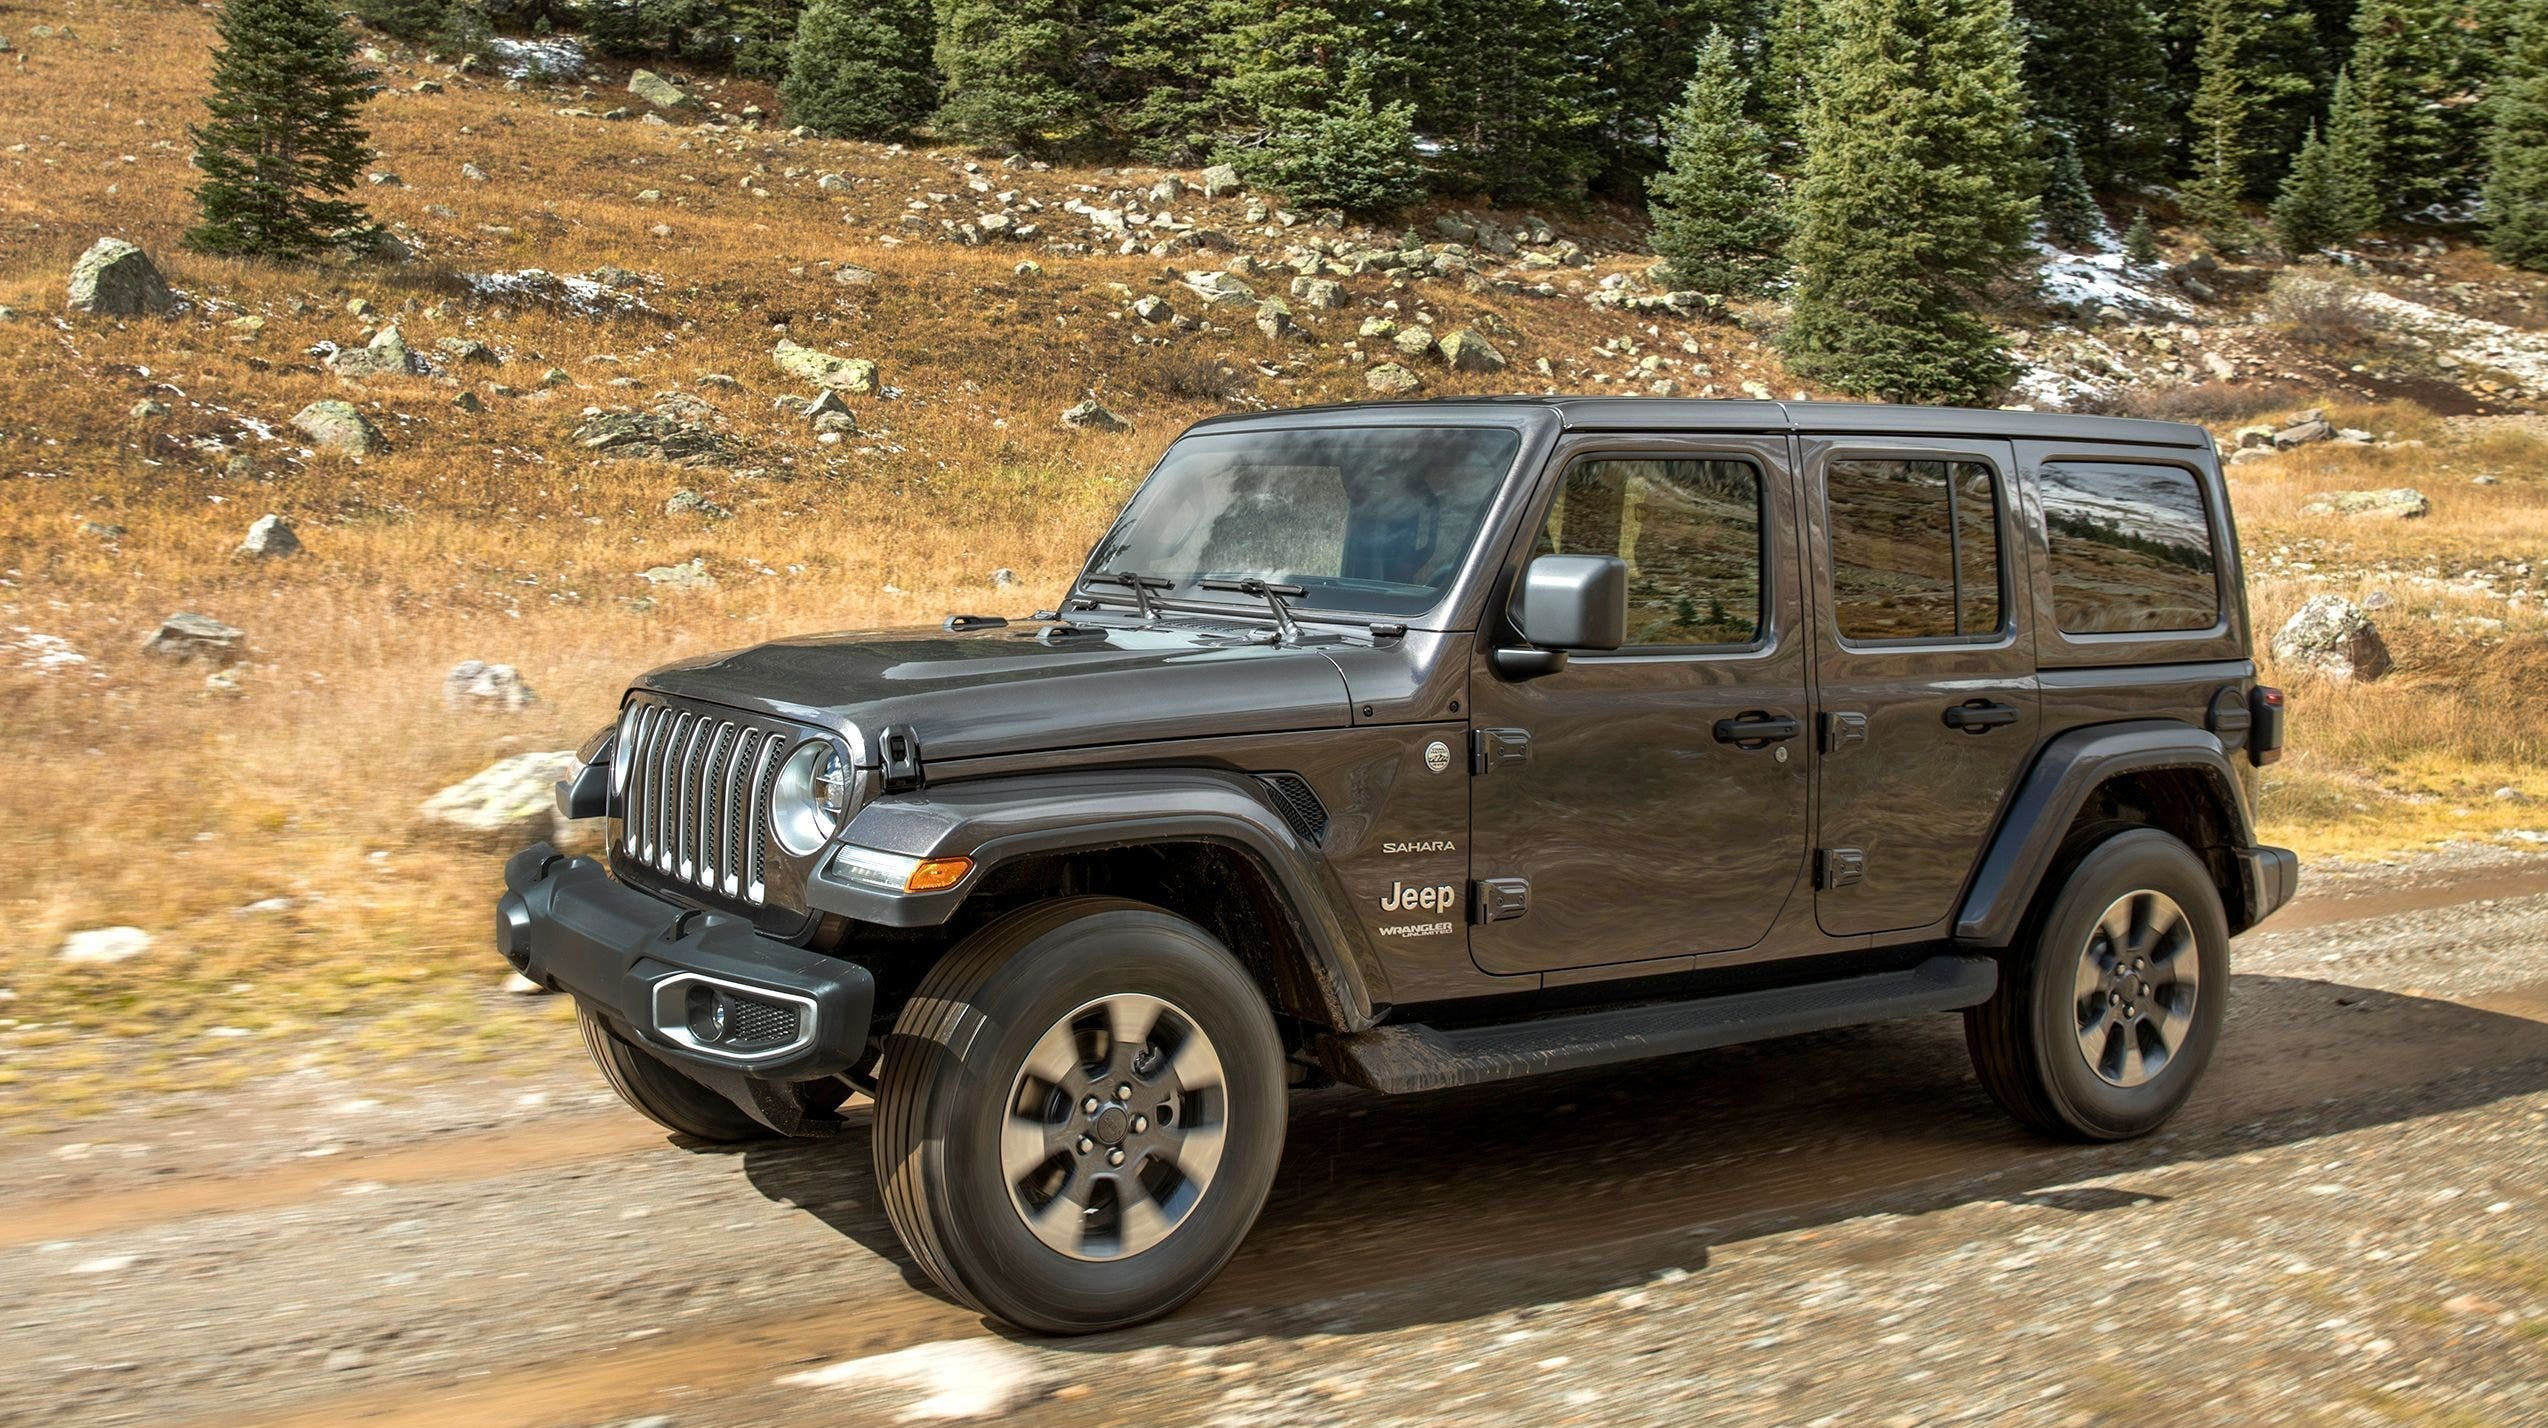 Some drivers have complained that certain Jeep Wranglers can develop an intense steering vibration known as a death wobble if they hit a bump at highway speeds.